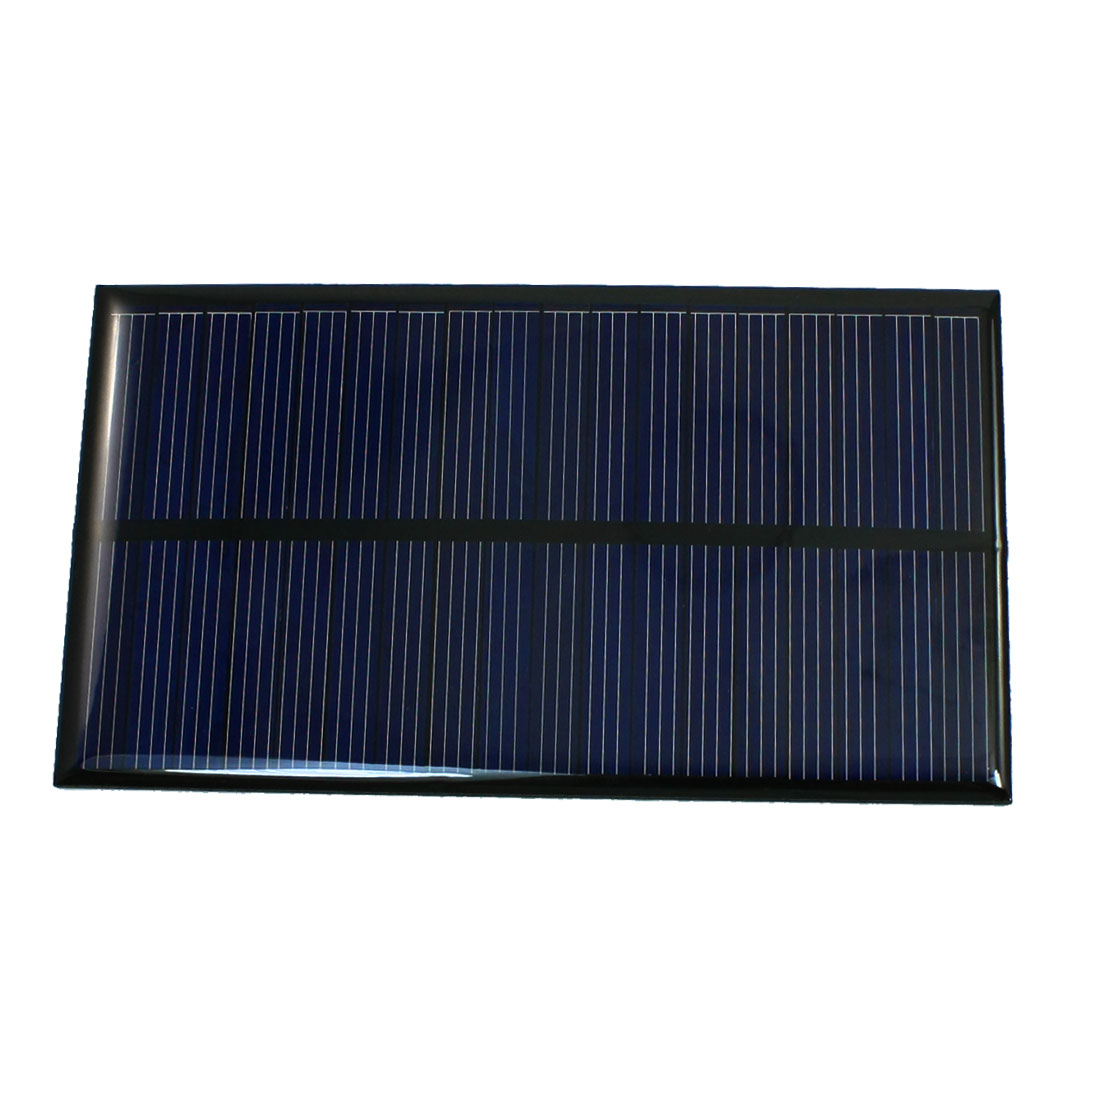 150mm x 85mm Rectangle Shaped Epoxy Resin Solar Panel 9V 185mA